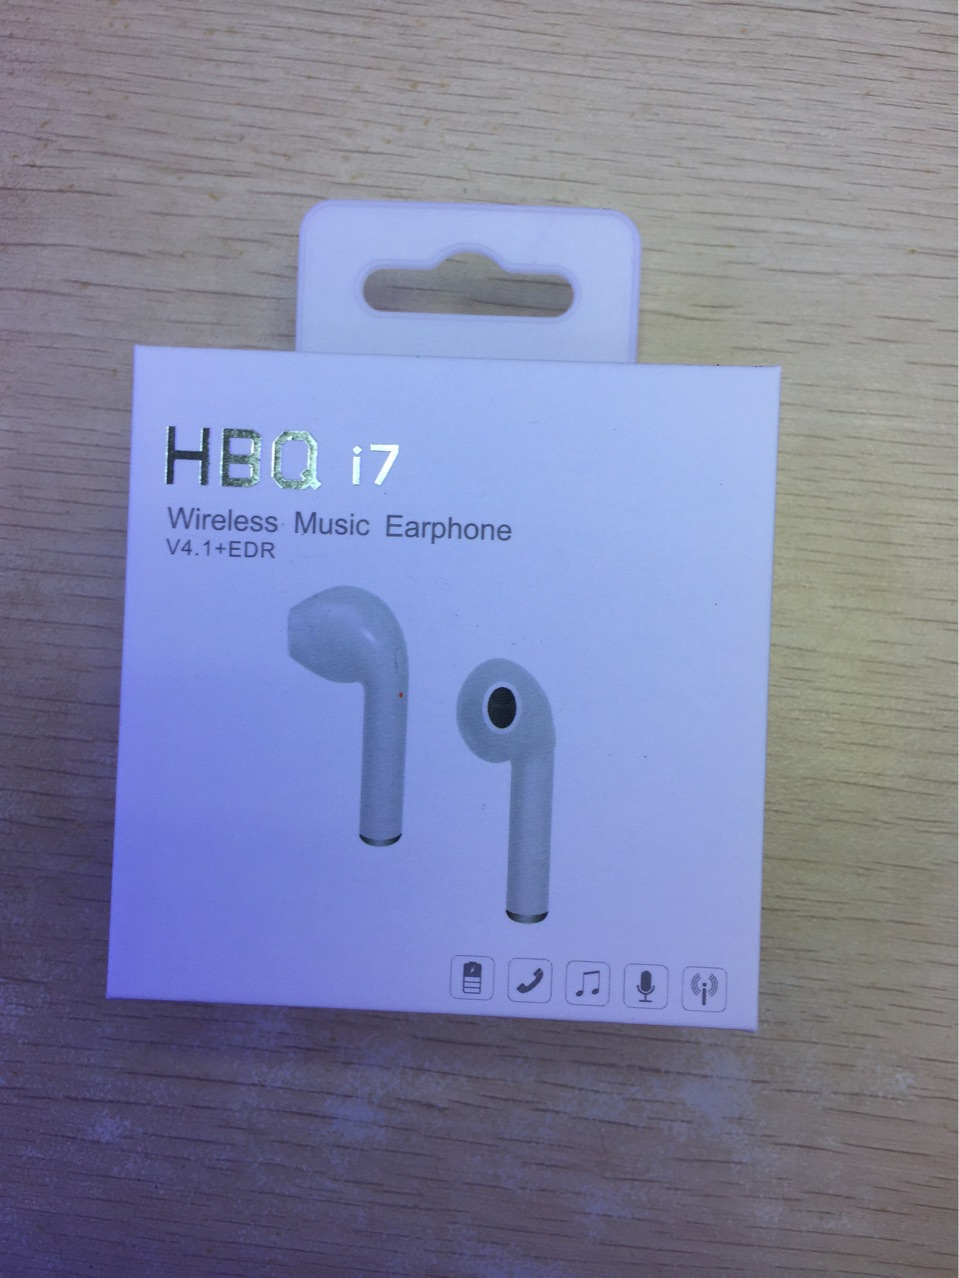 bb8912c7da9 New HBQ i7 stealth mini Bluetooth headset earbuds 4.1 Noise Cancelling  stereo single ear Bluetooth earphone for xiaomi iPhone-in Bluetooth  Earphones ...